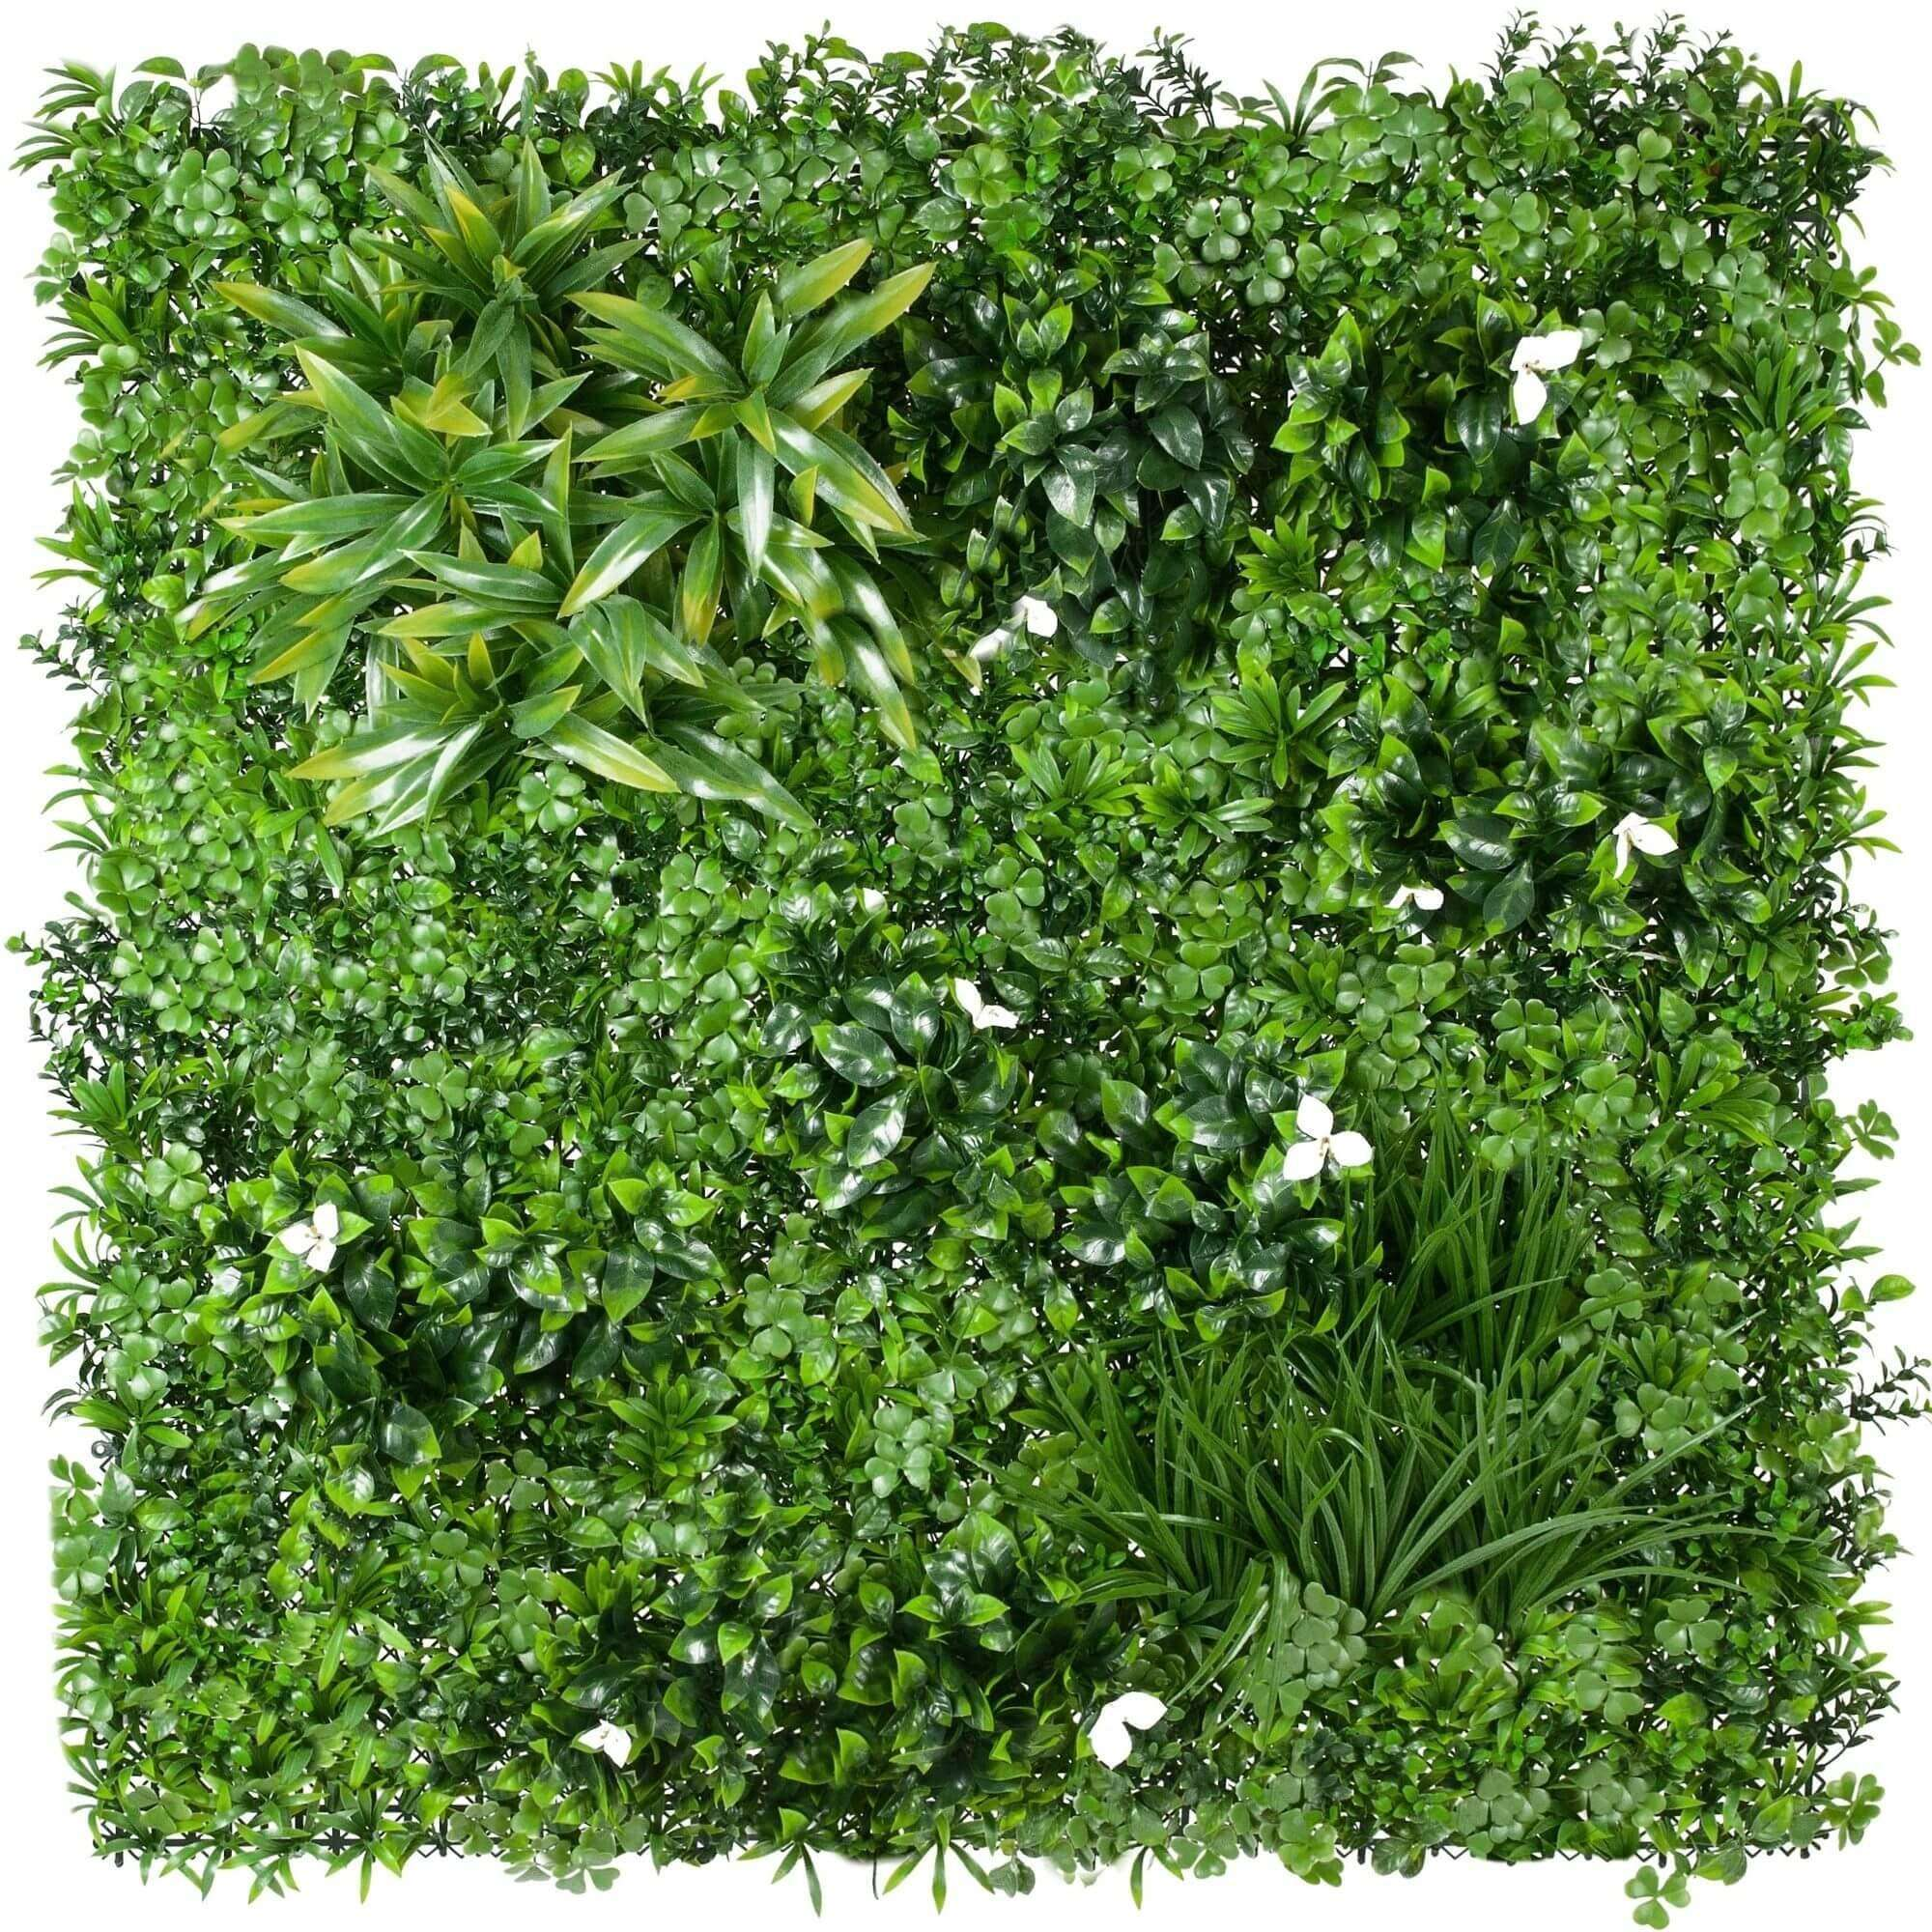 White Lily Artificial Vertical Garden / Fake Green Wall 1m x 1m UV Resistant